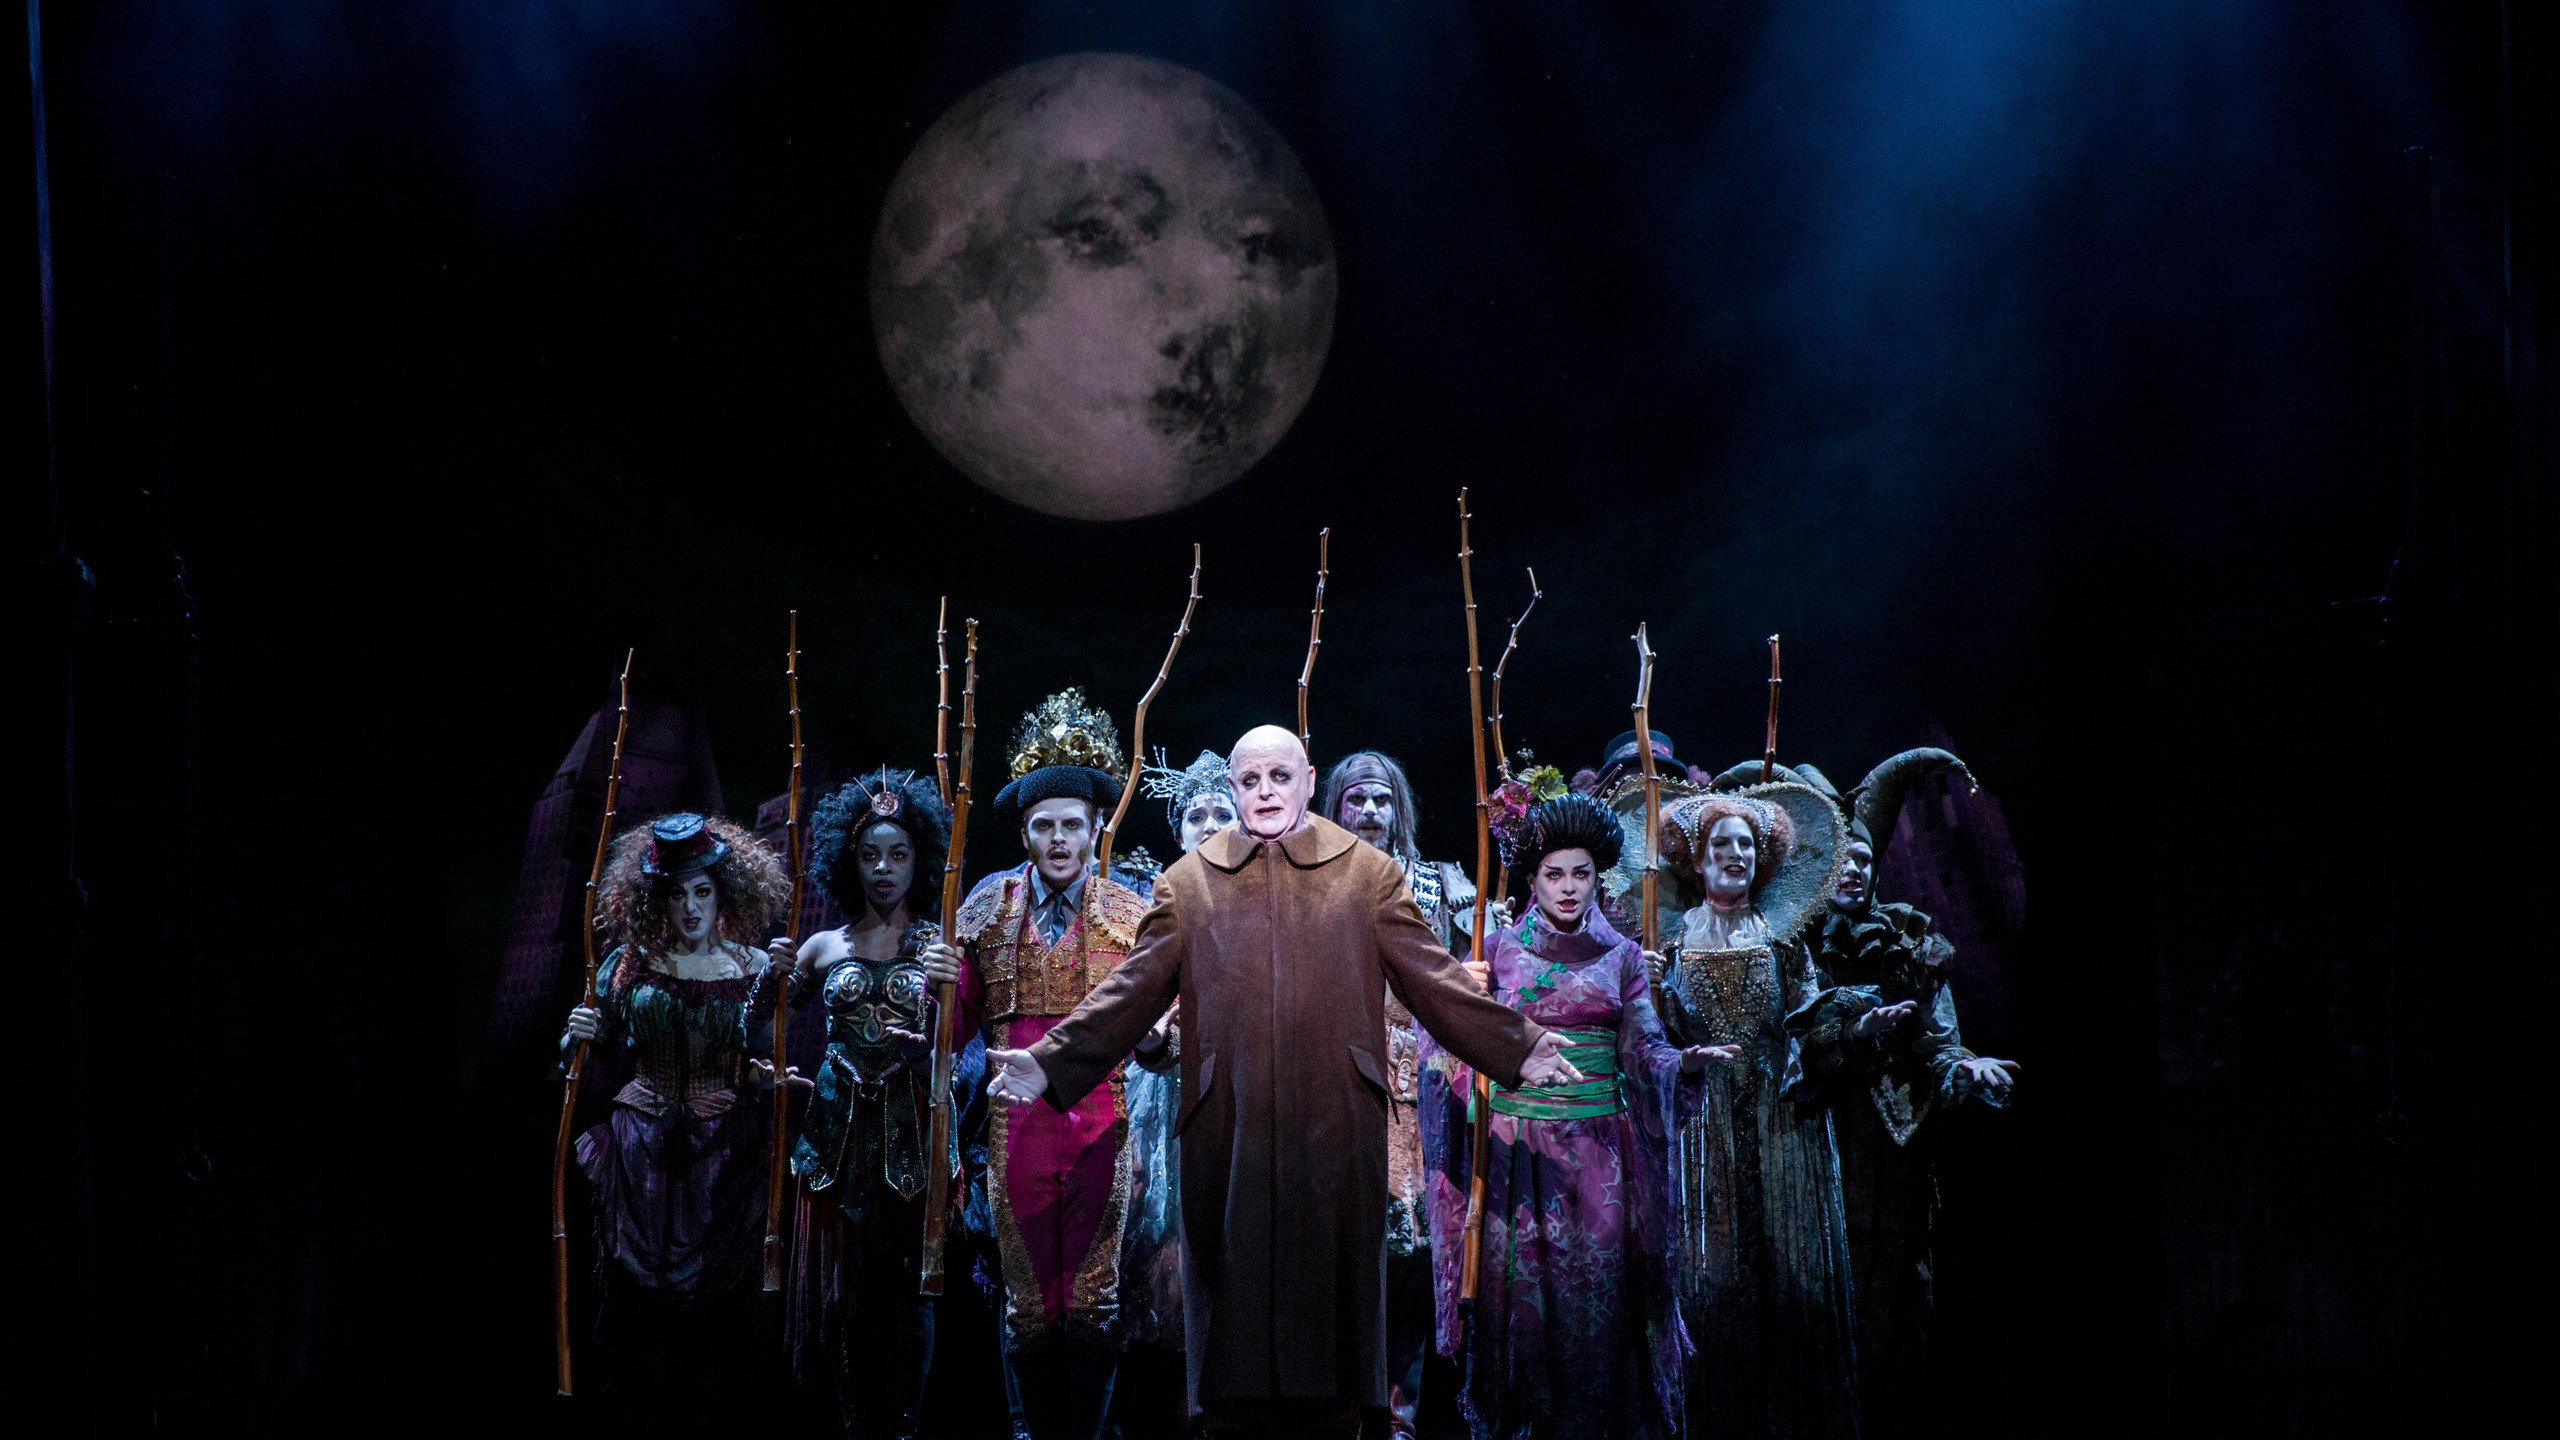 Les Dennis as Uncle Fester (centre) and the cast of THE ADDAMS FAMILY. Credit Matt Martin